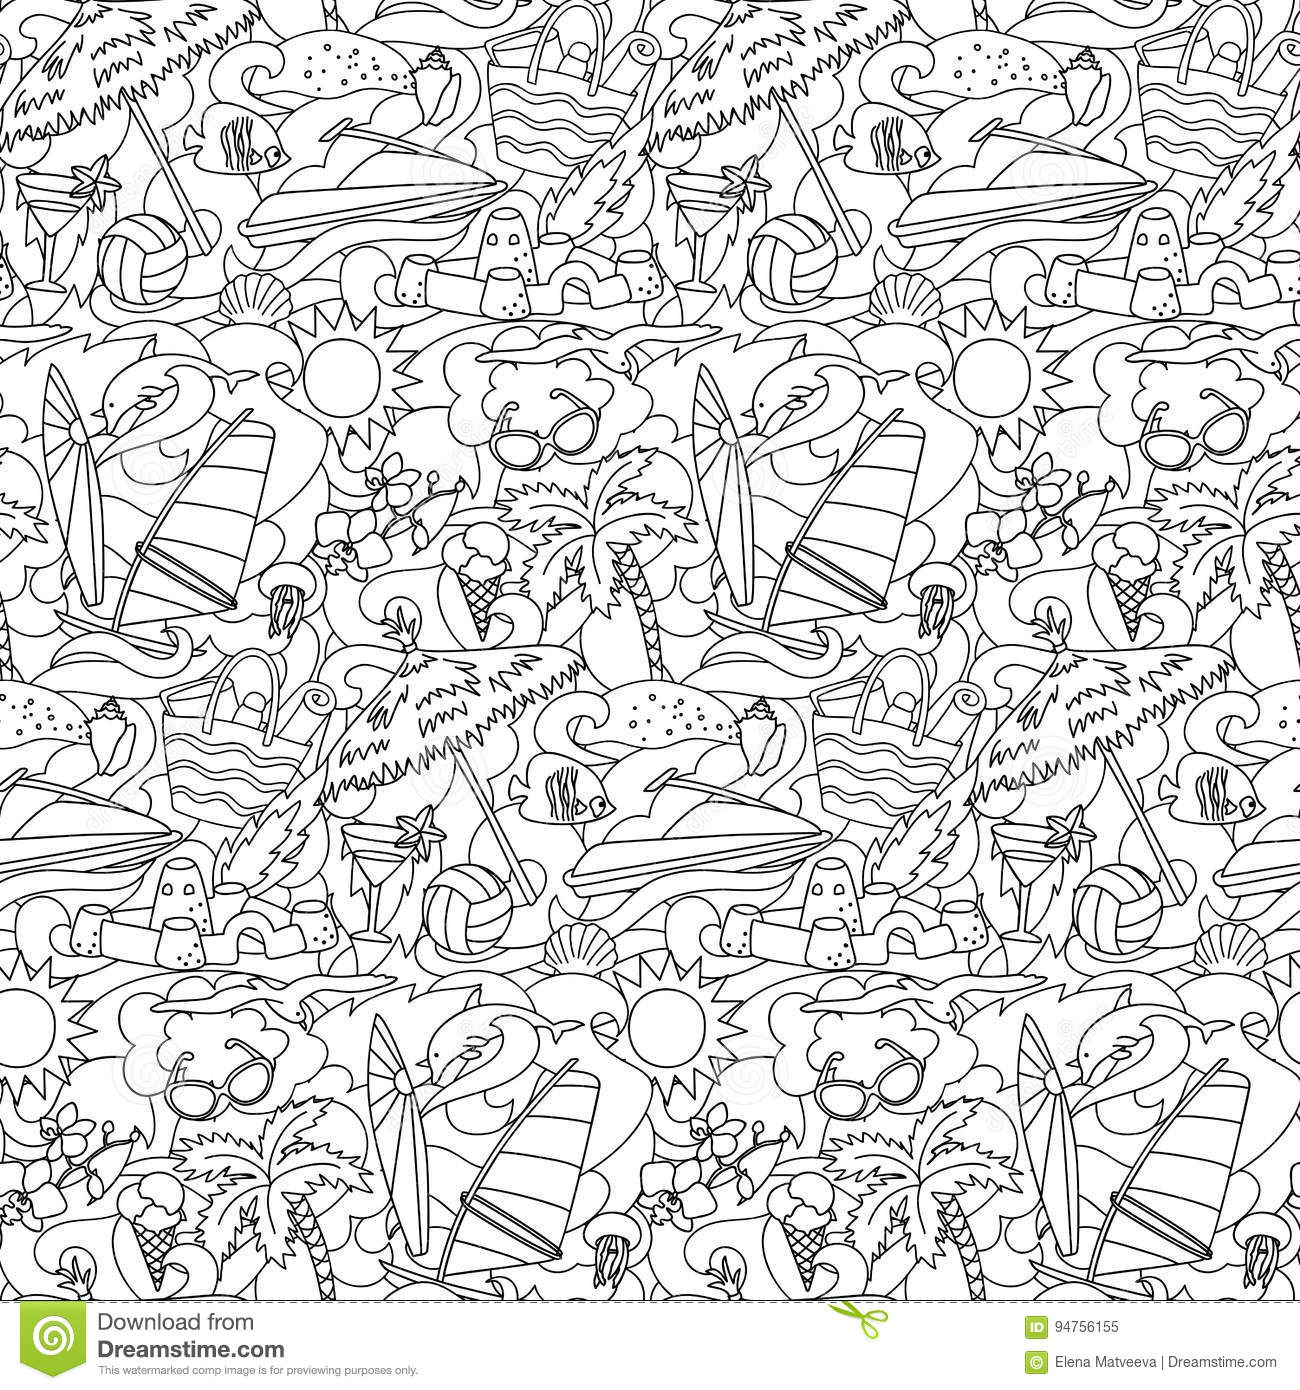 coloring pages free summer wallpaper - photo#6